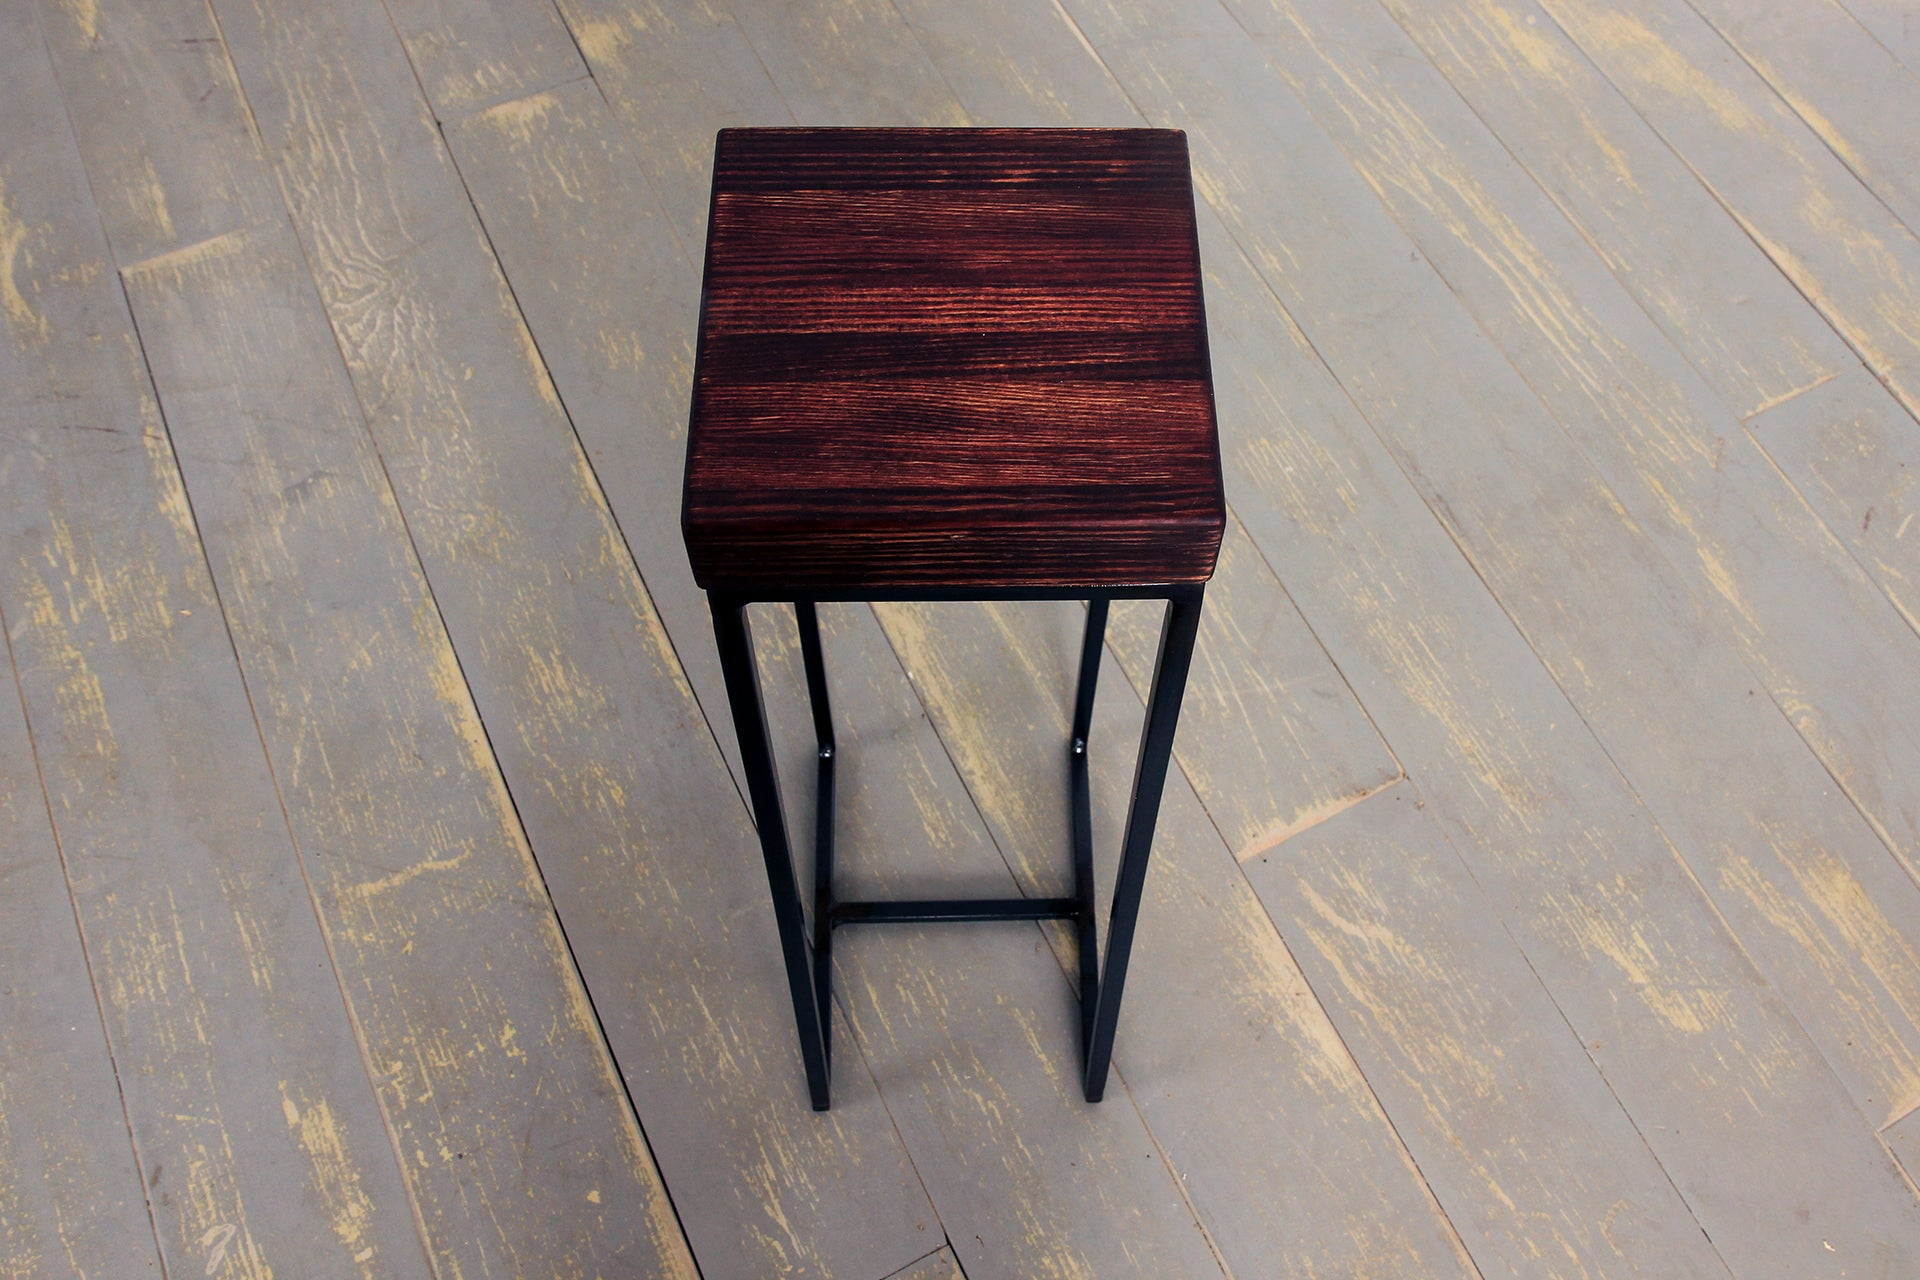 The High Ball Table in Distressed Bordeaux and Clear Coat